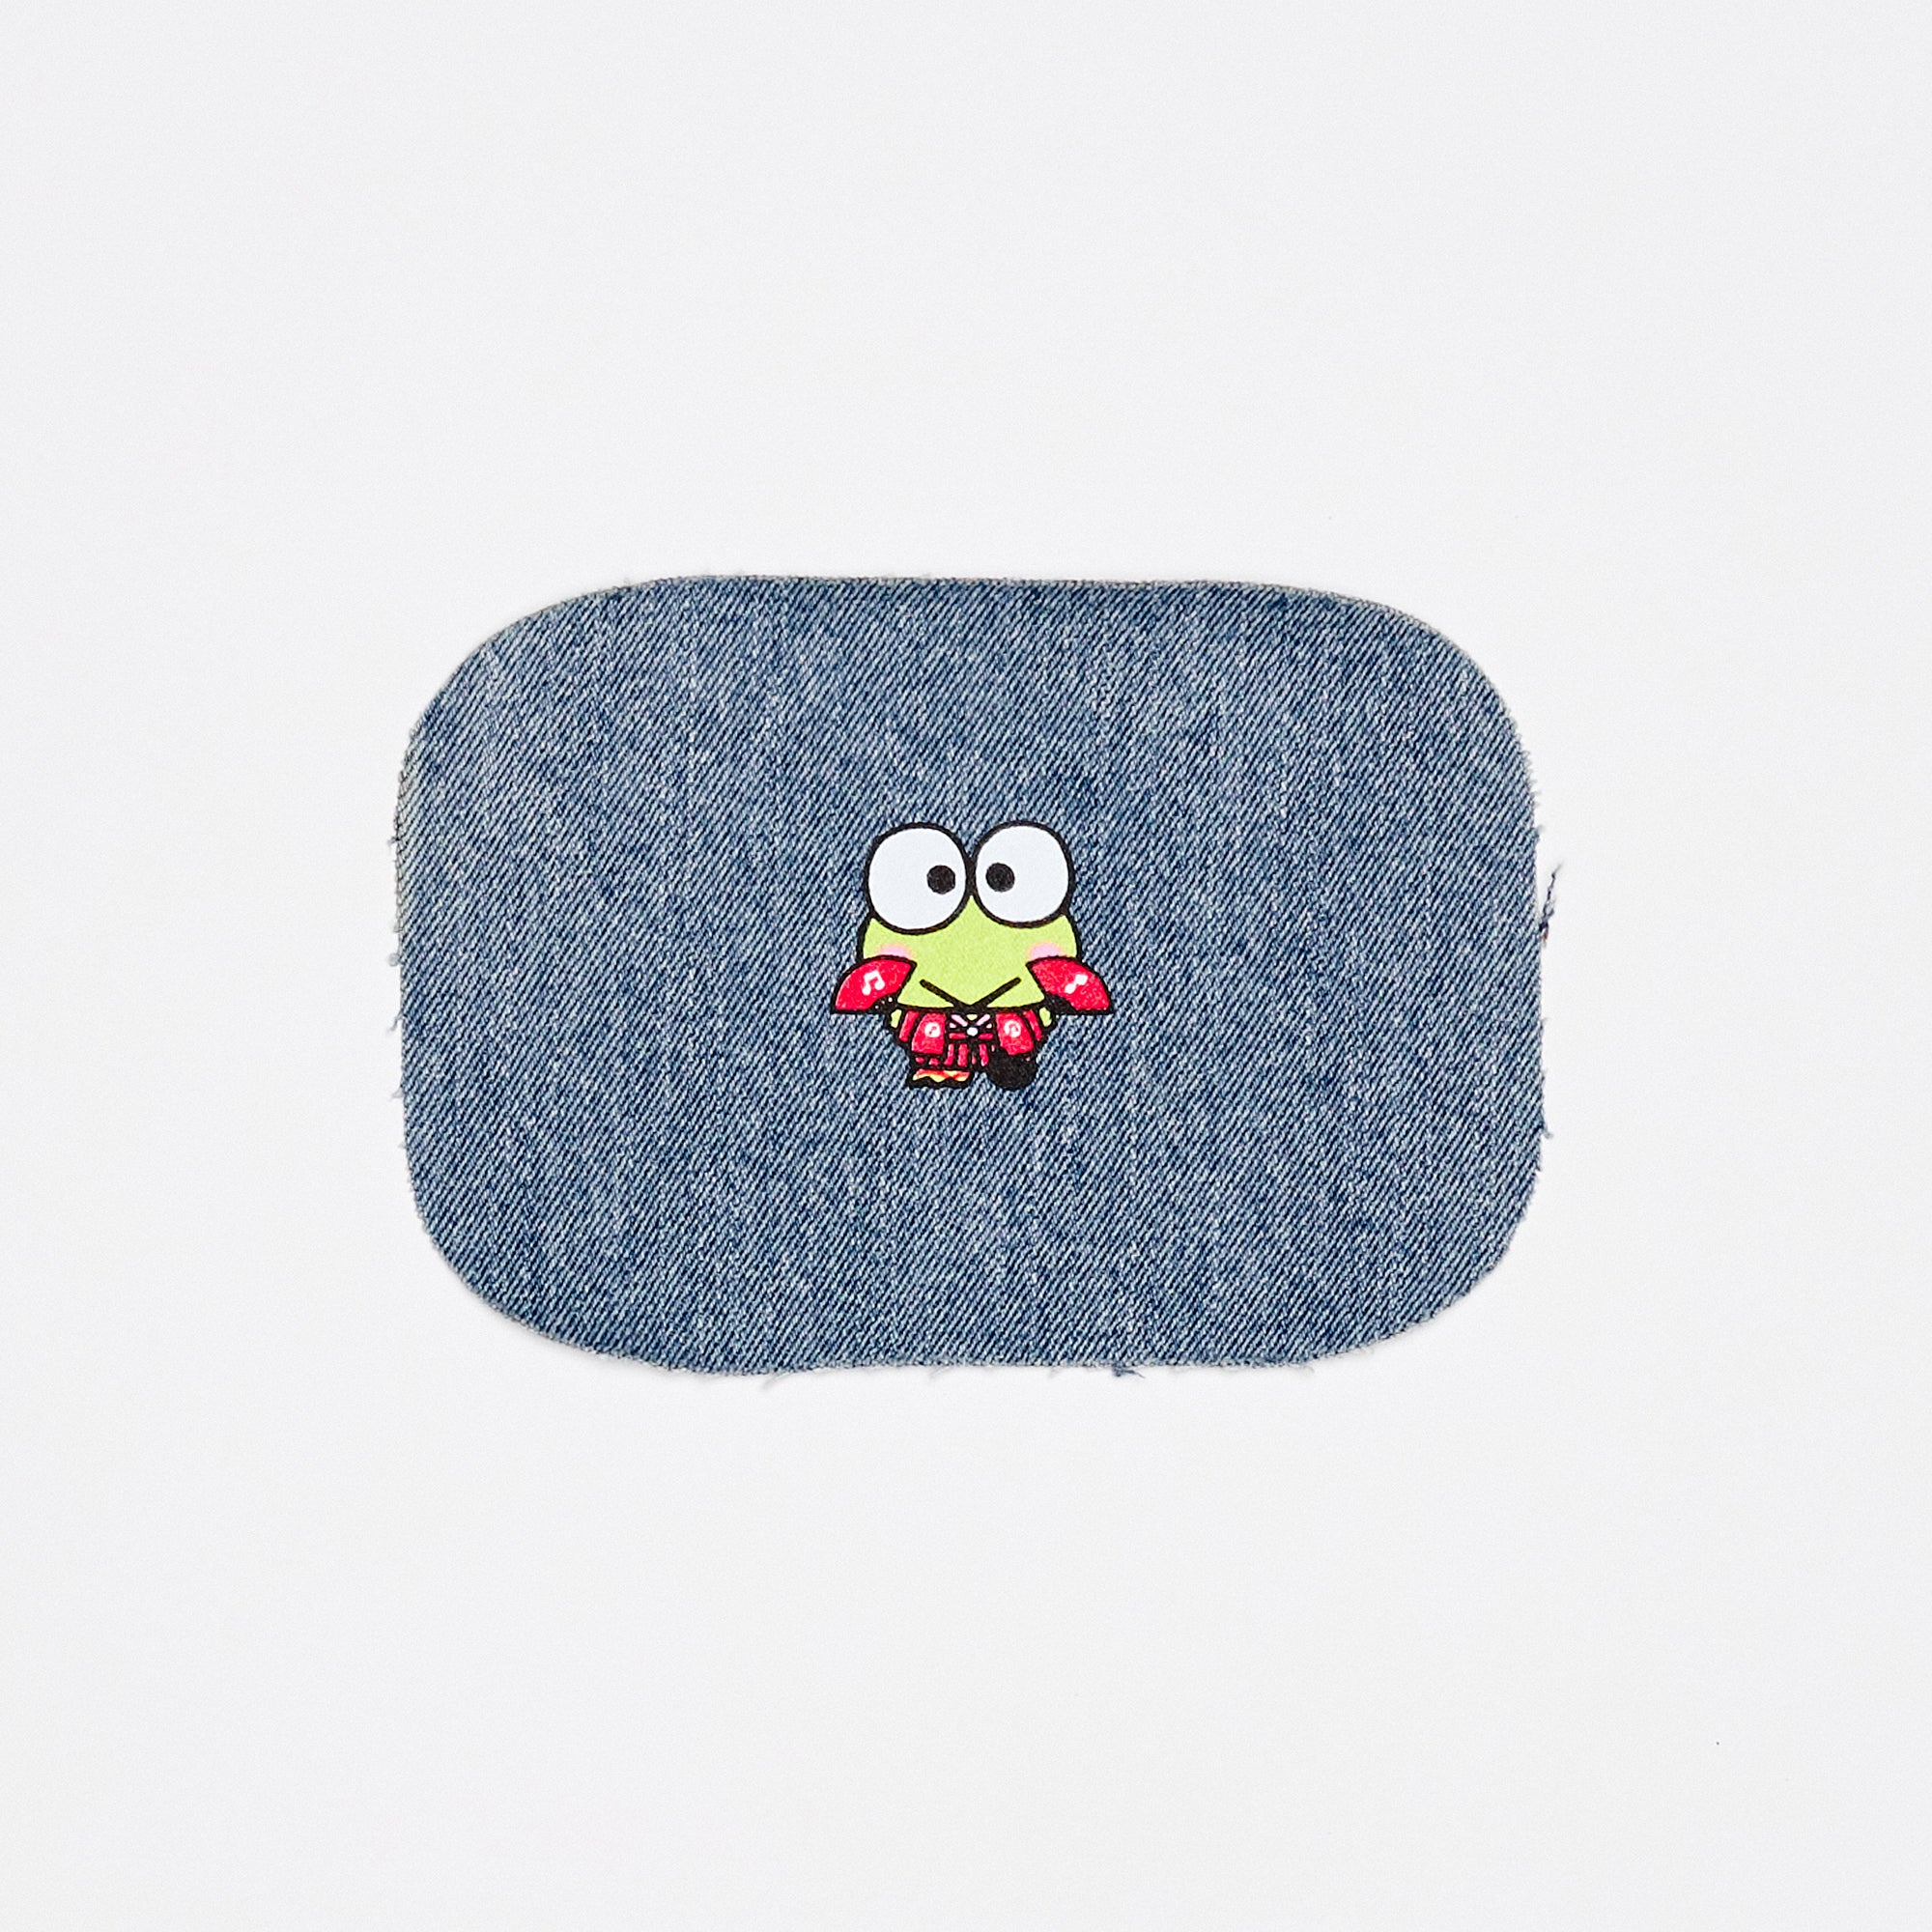 Keroppi 60th Anniversary Mending Patch